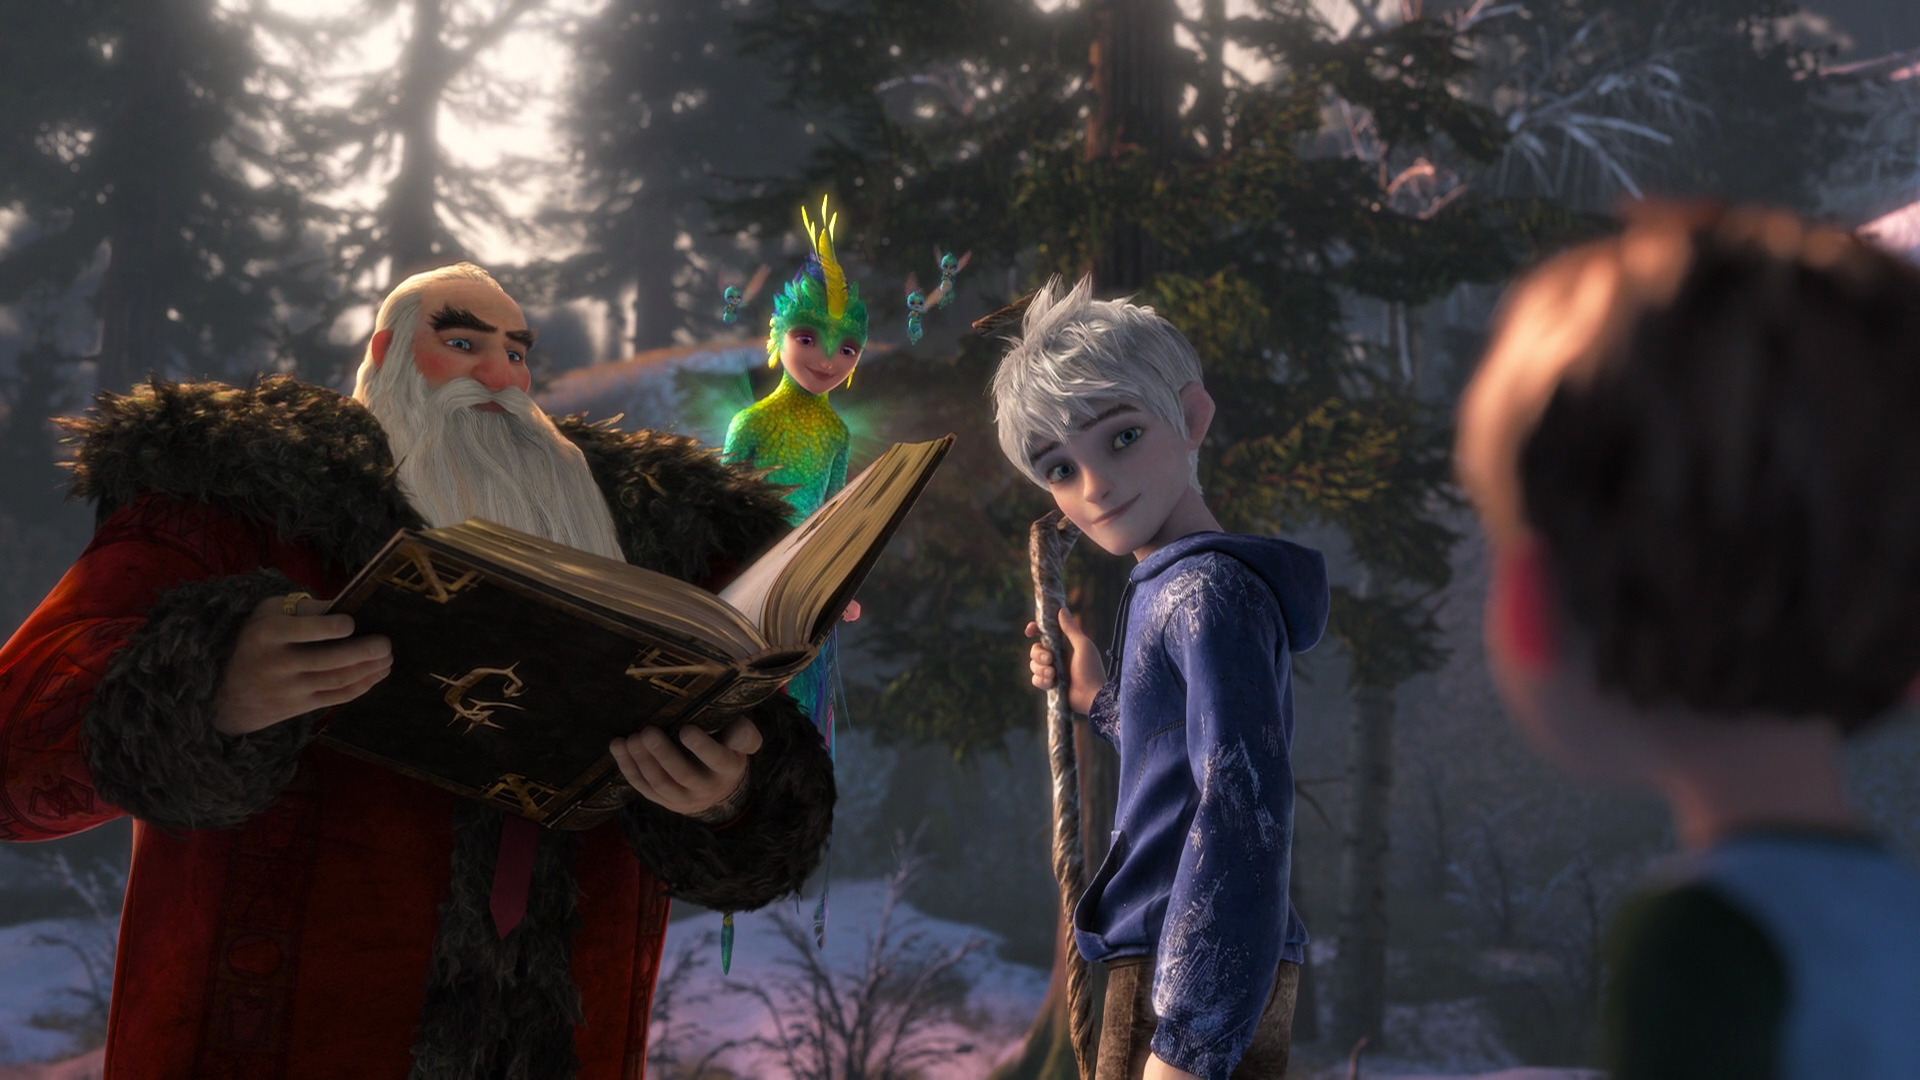 Jamie bennett rise of the guardians wiki - Pics of rise of the guardians ...